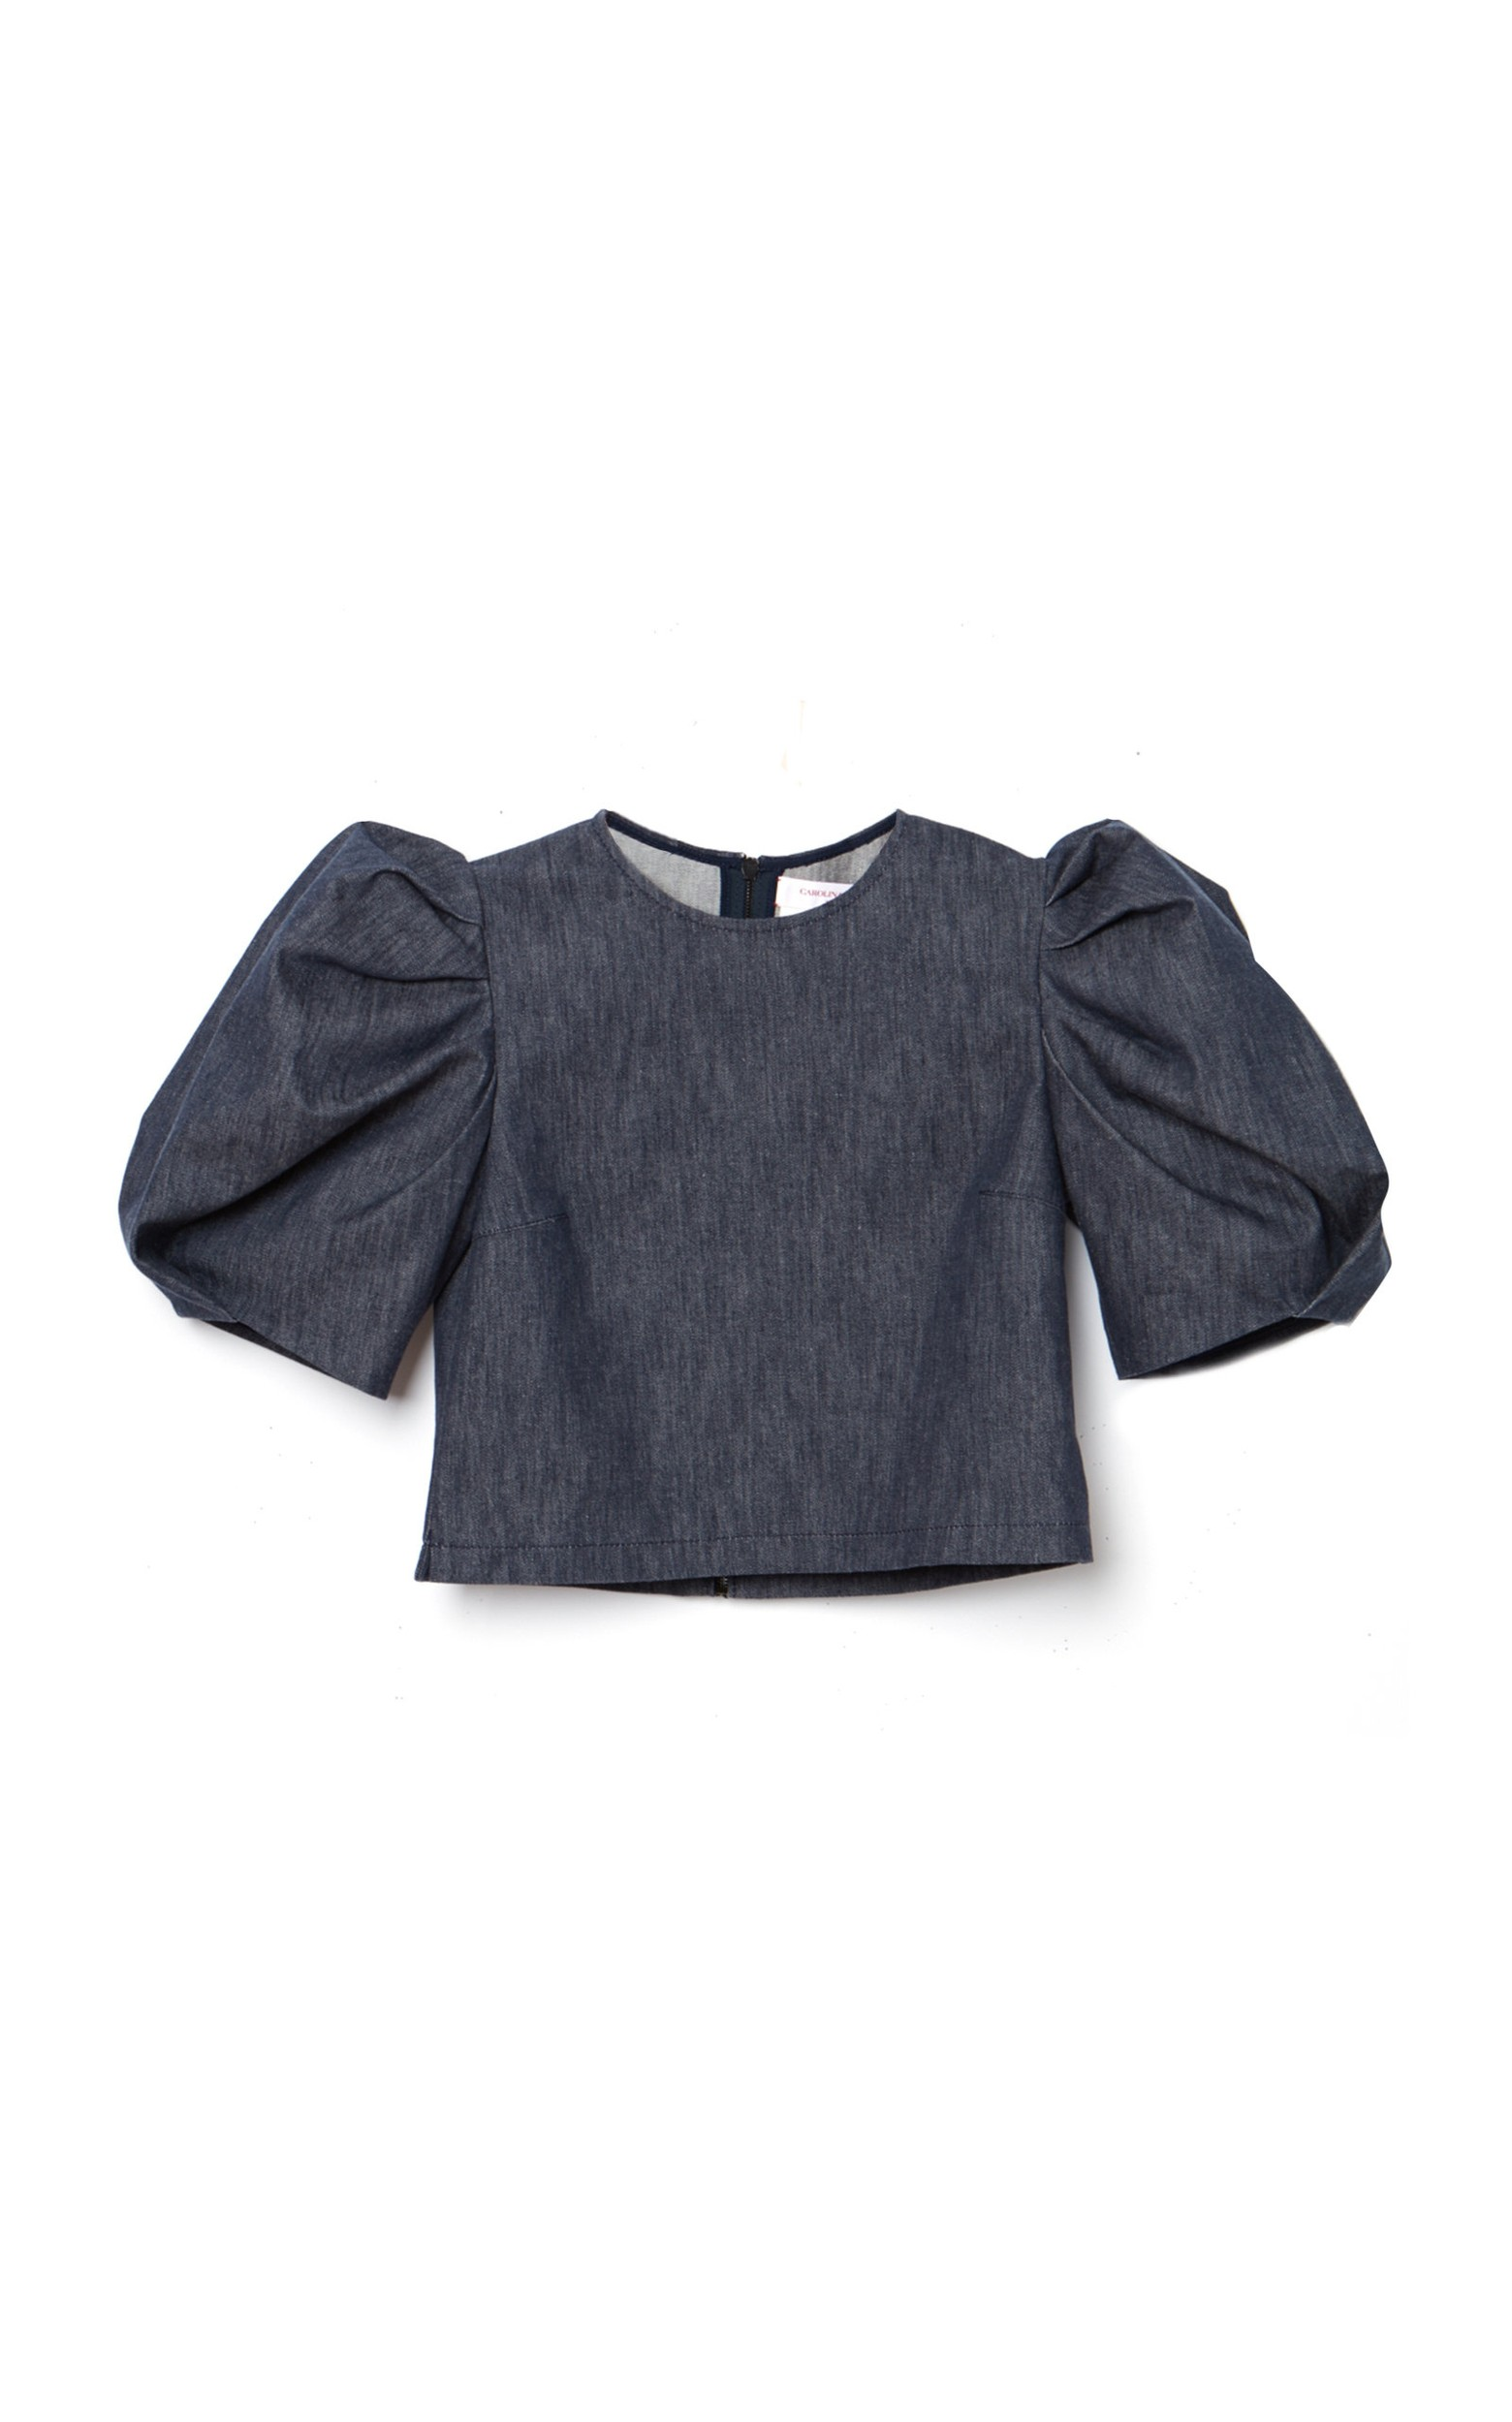 large_carolina-herrera-navy-puff-sleeve-stretch-denim-crop-top